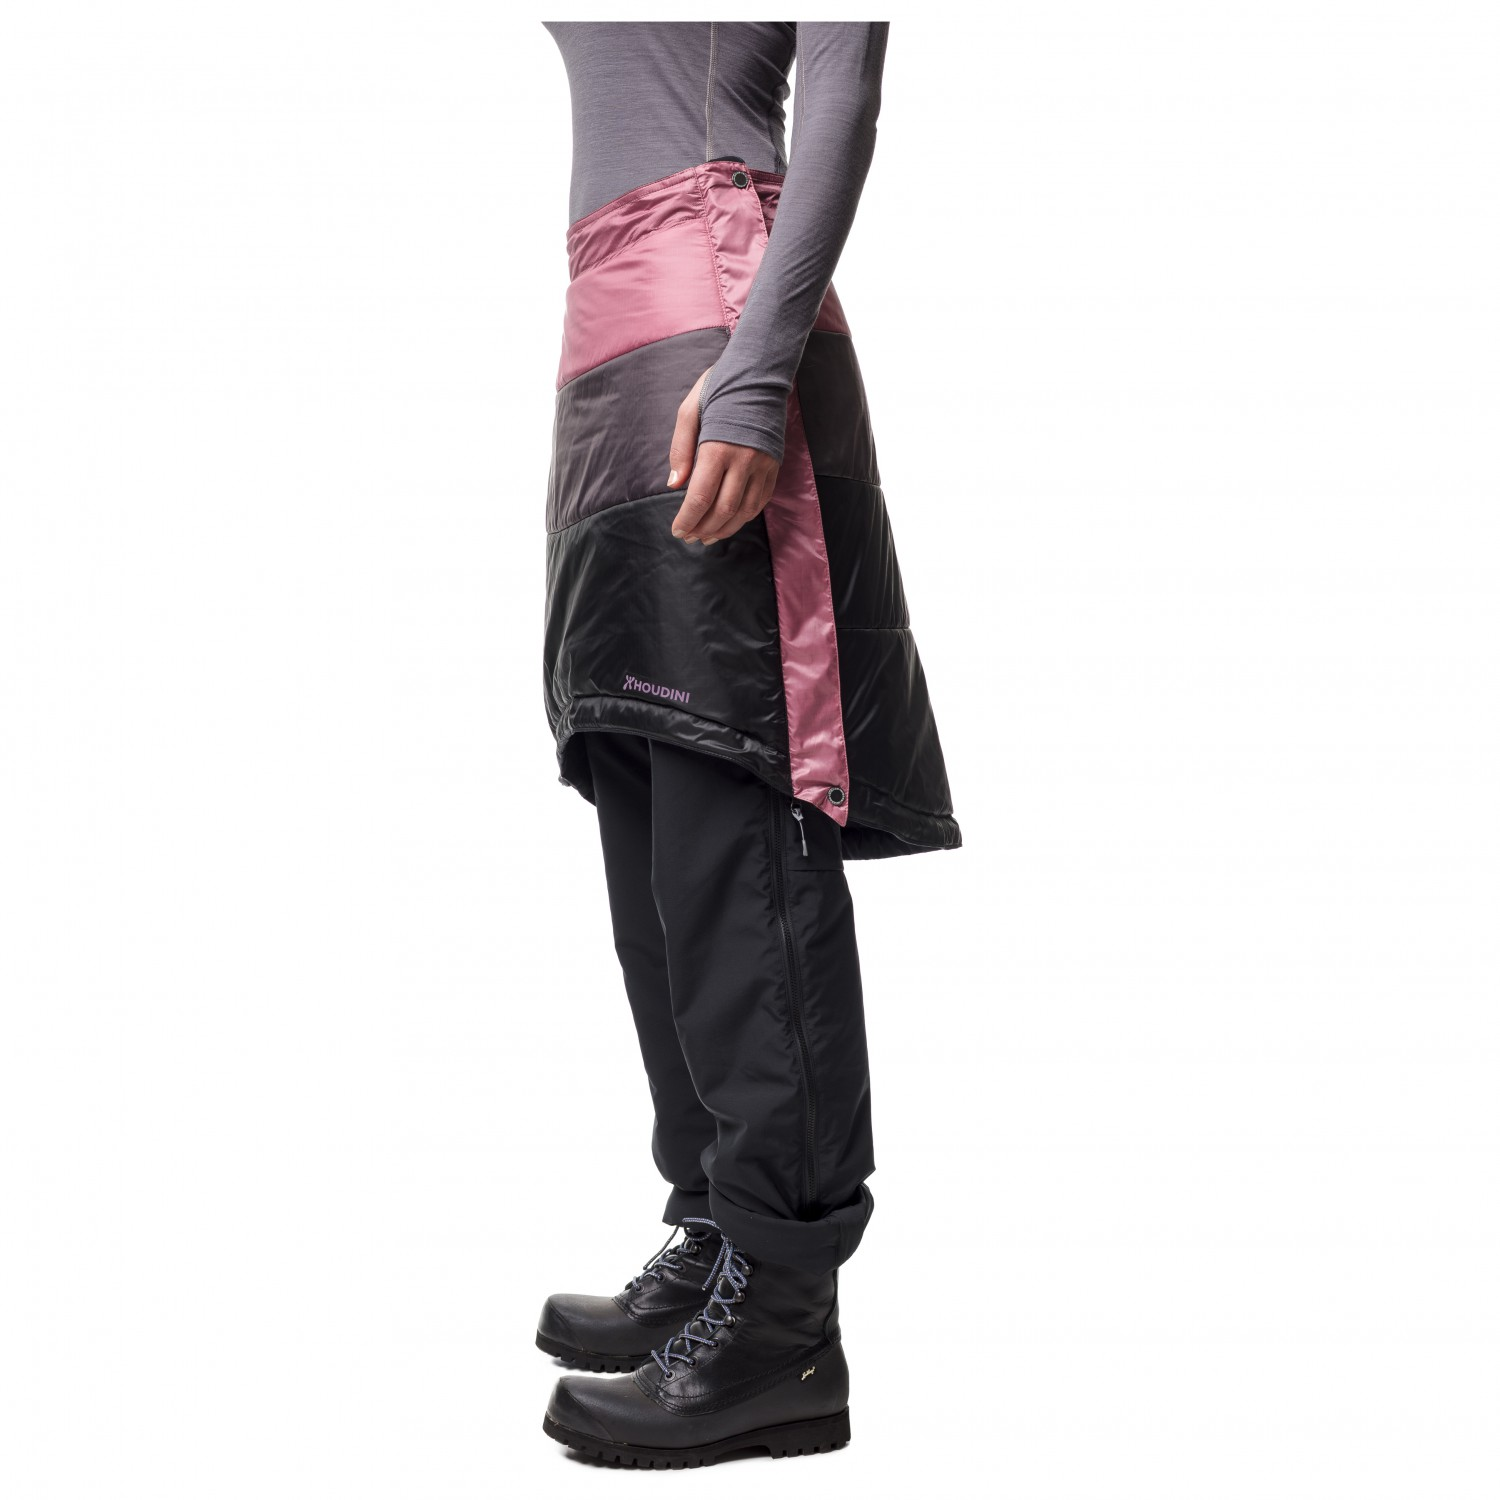 5346974ec Houdini Sleepwalker - Synthetic Skirt Women's | Buy online ...